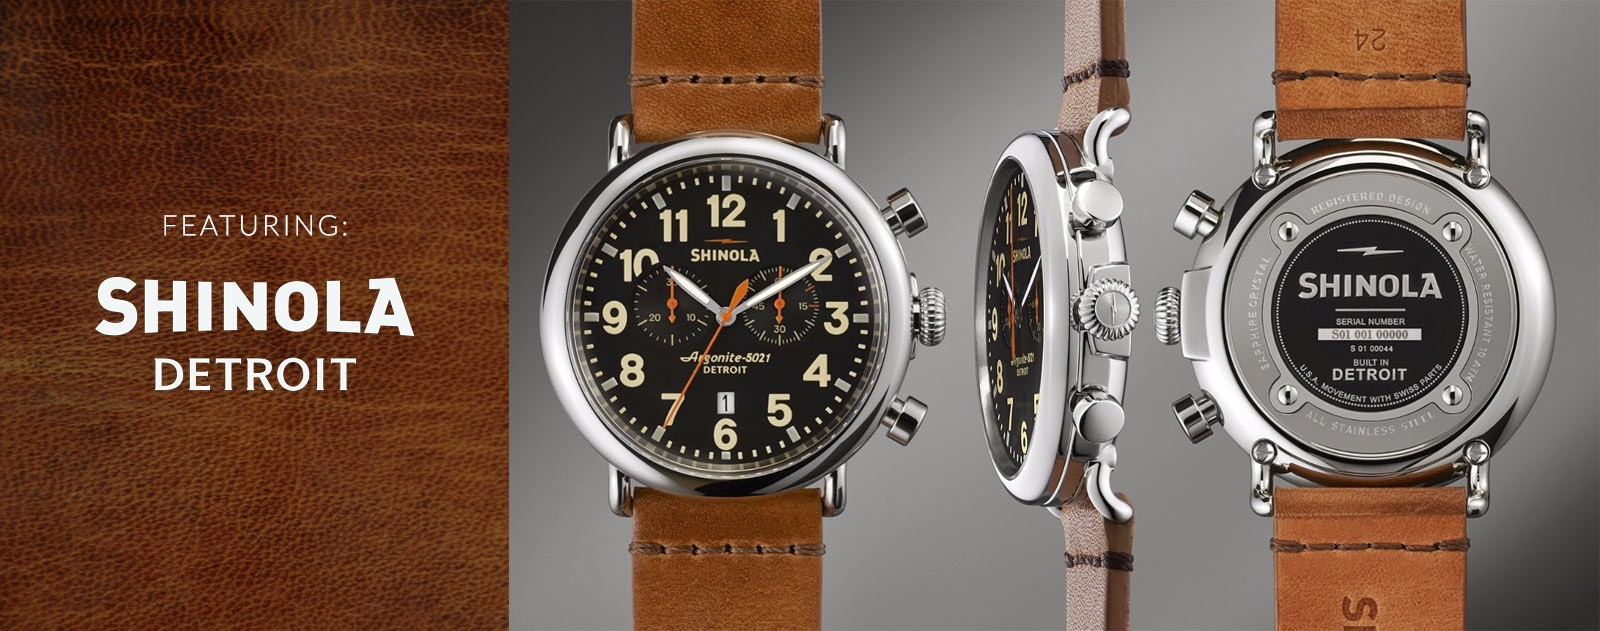 Shinola - Detroit - Watches